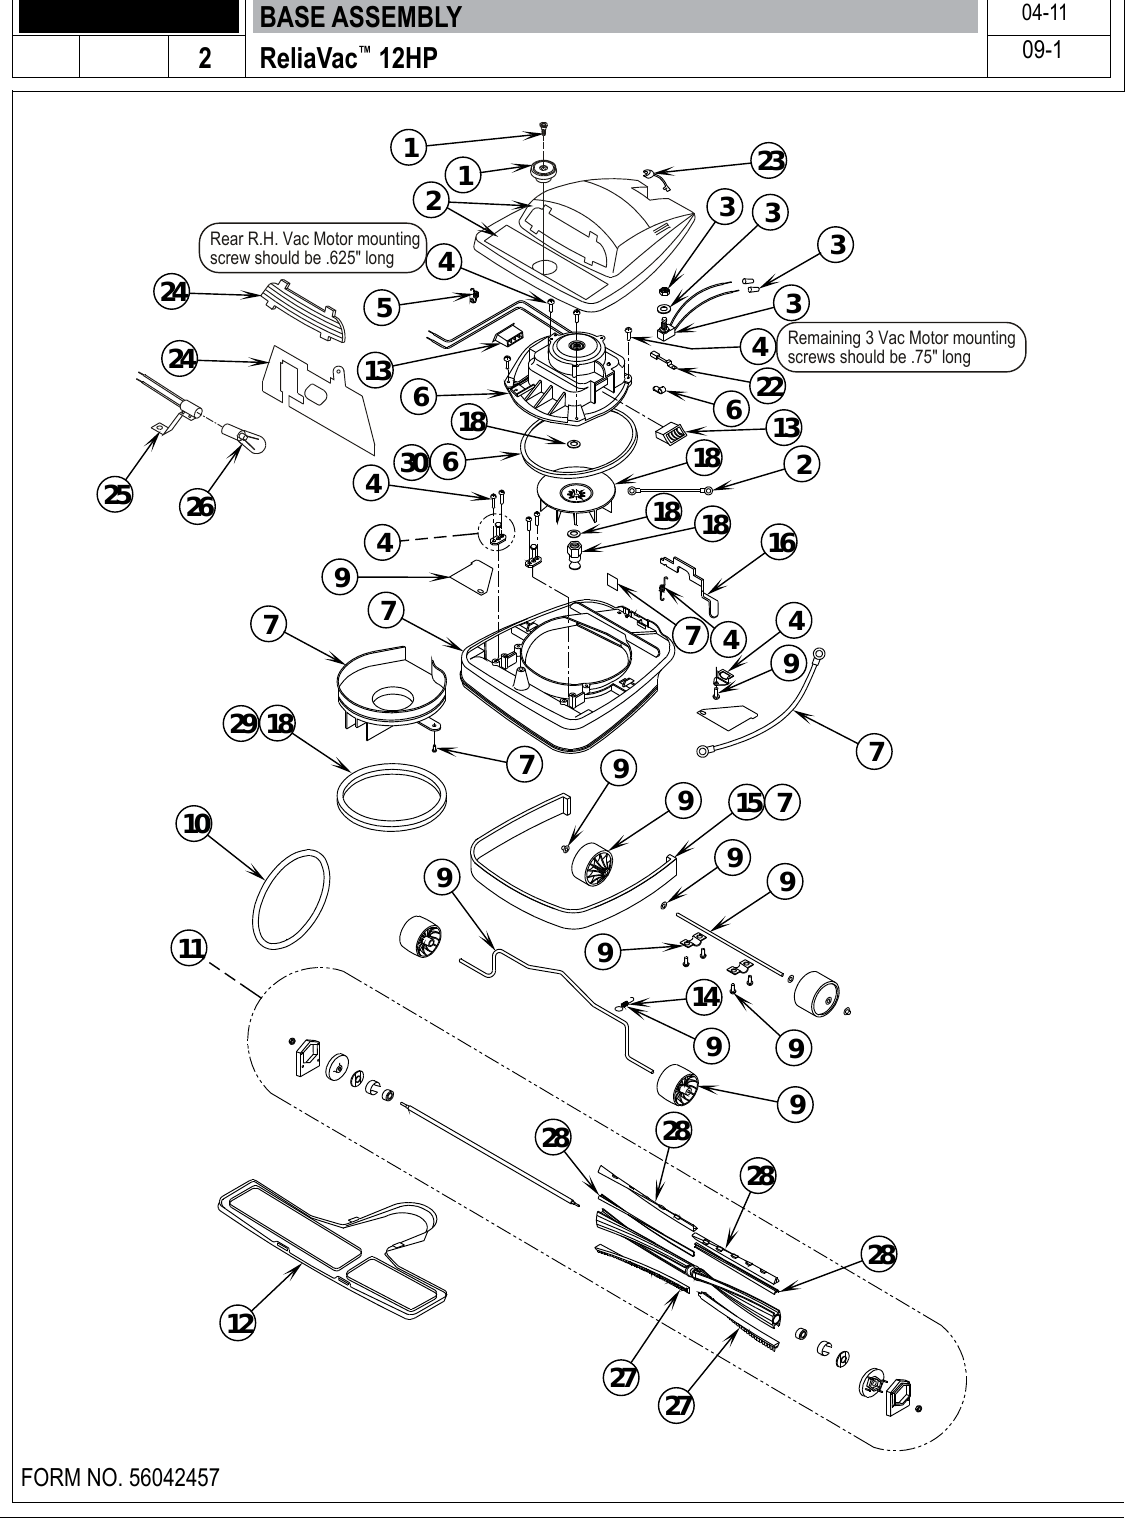 hight resolution of page 4 of 12 clarke reliavac 12hp upright vacuum parts